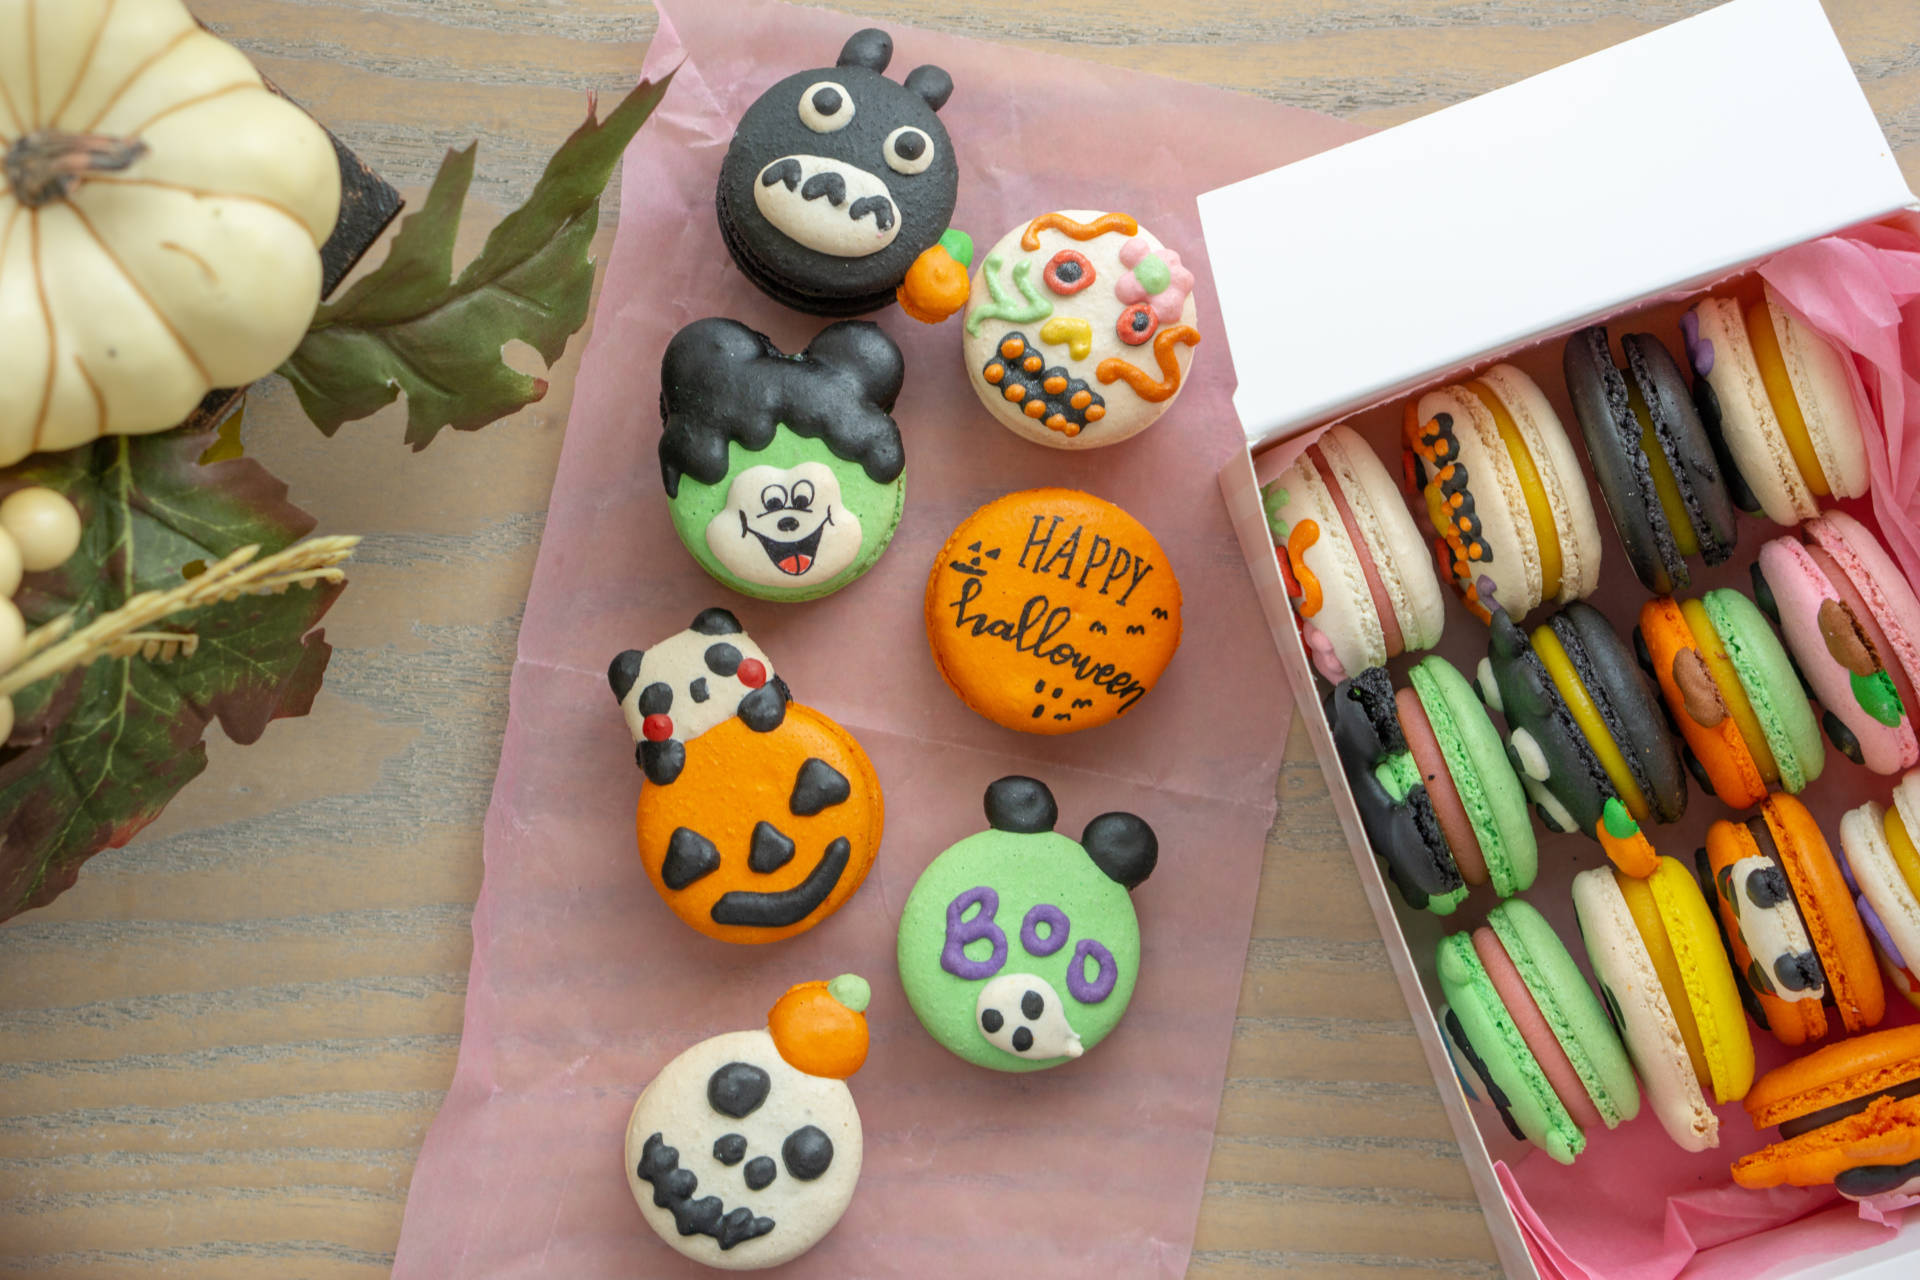 An assortment of Halloween macarons in guava, strawberry, chocolate, mango and more.